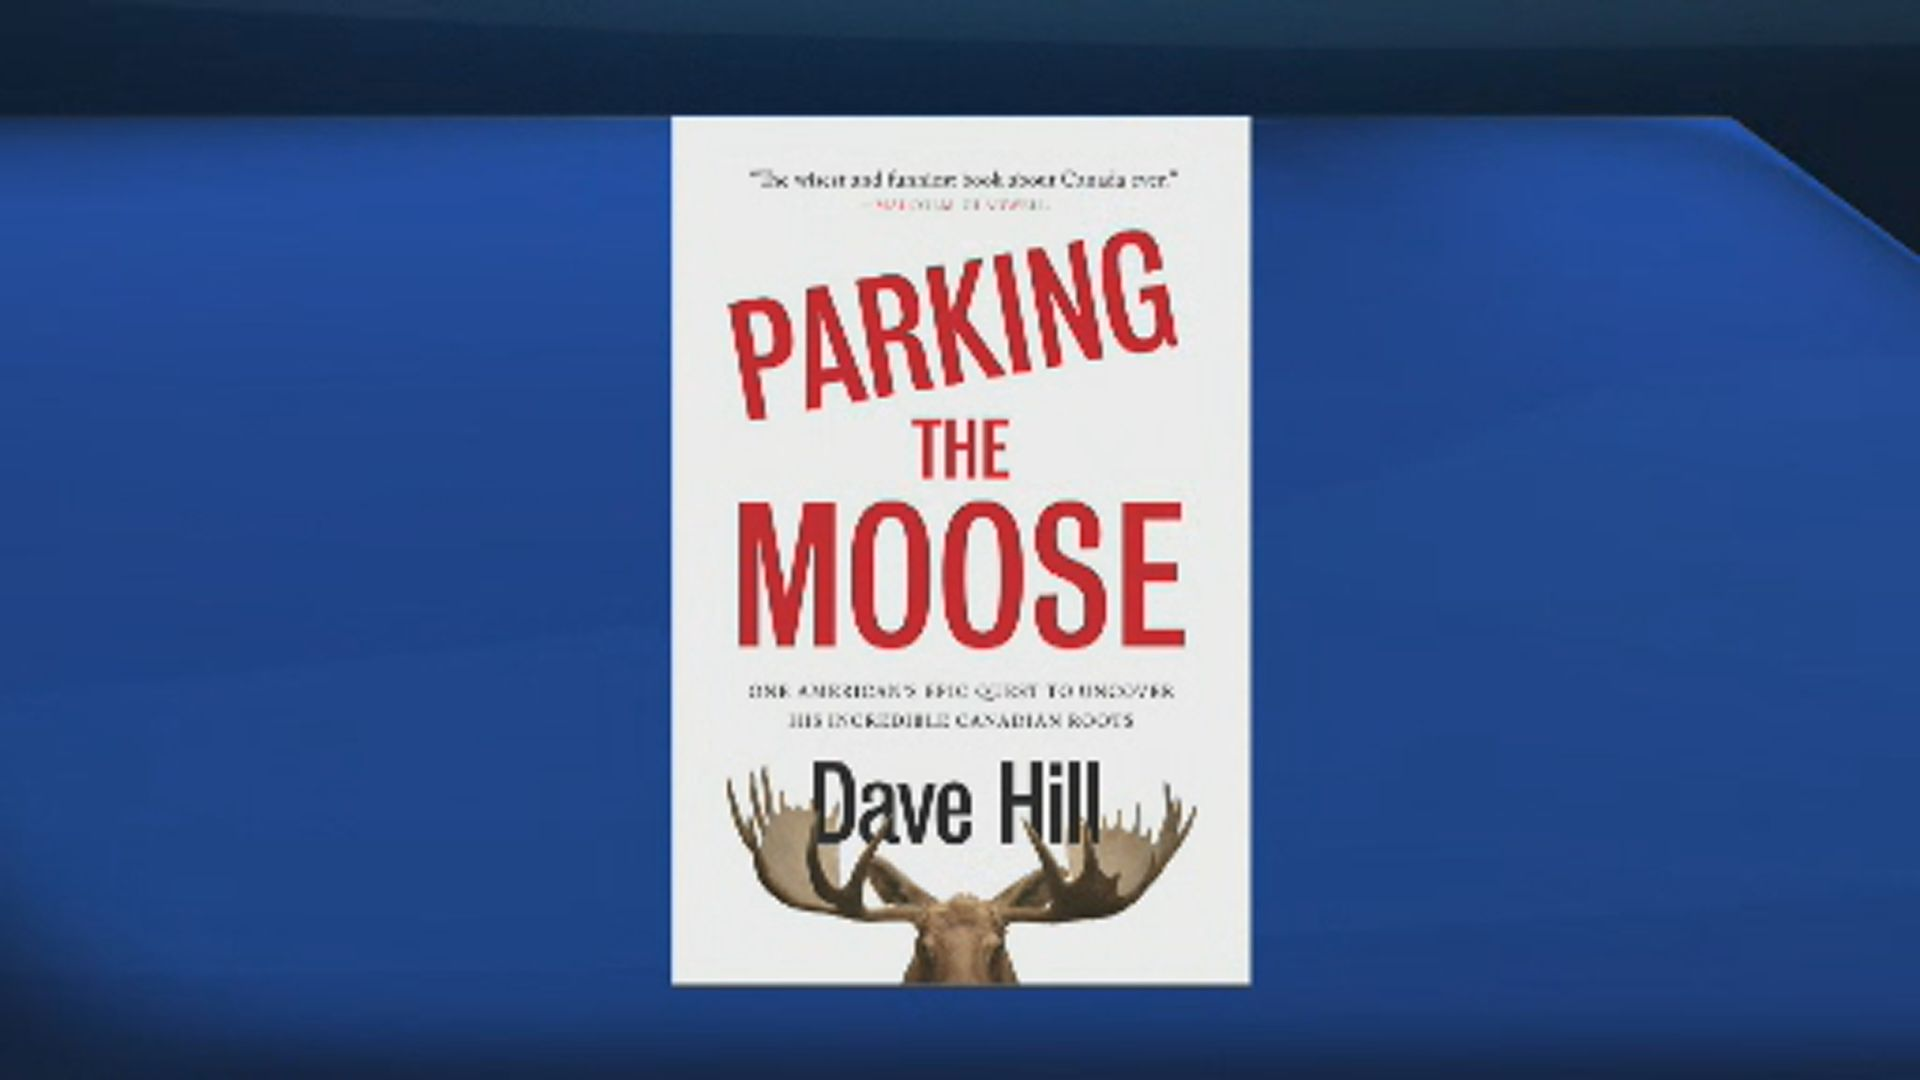 Dave Hill on Parking The Moose